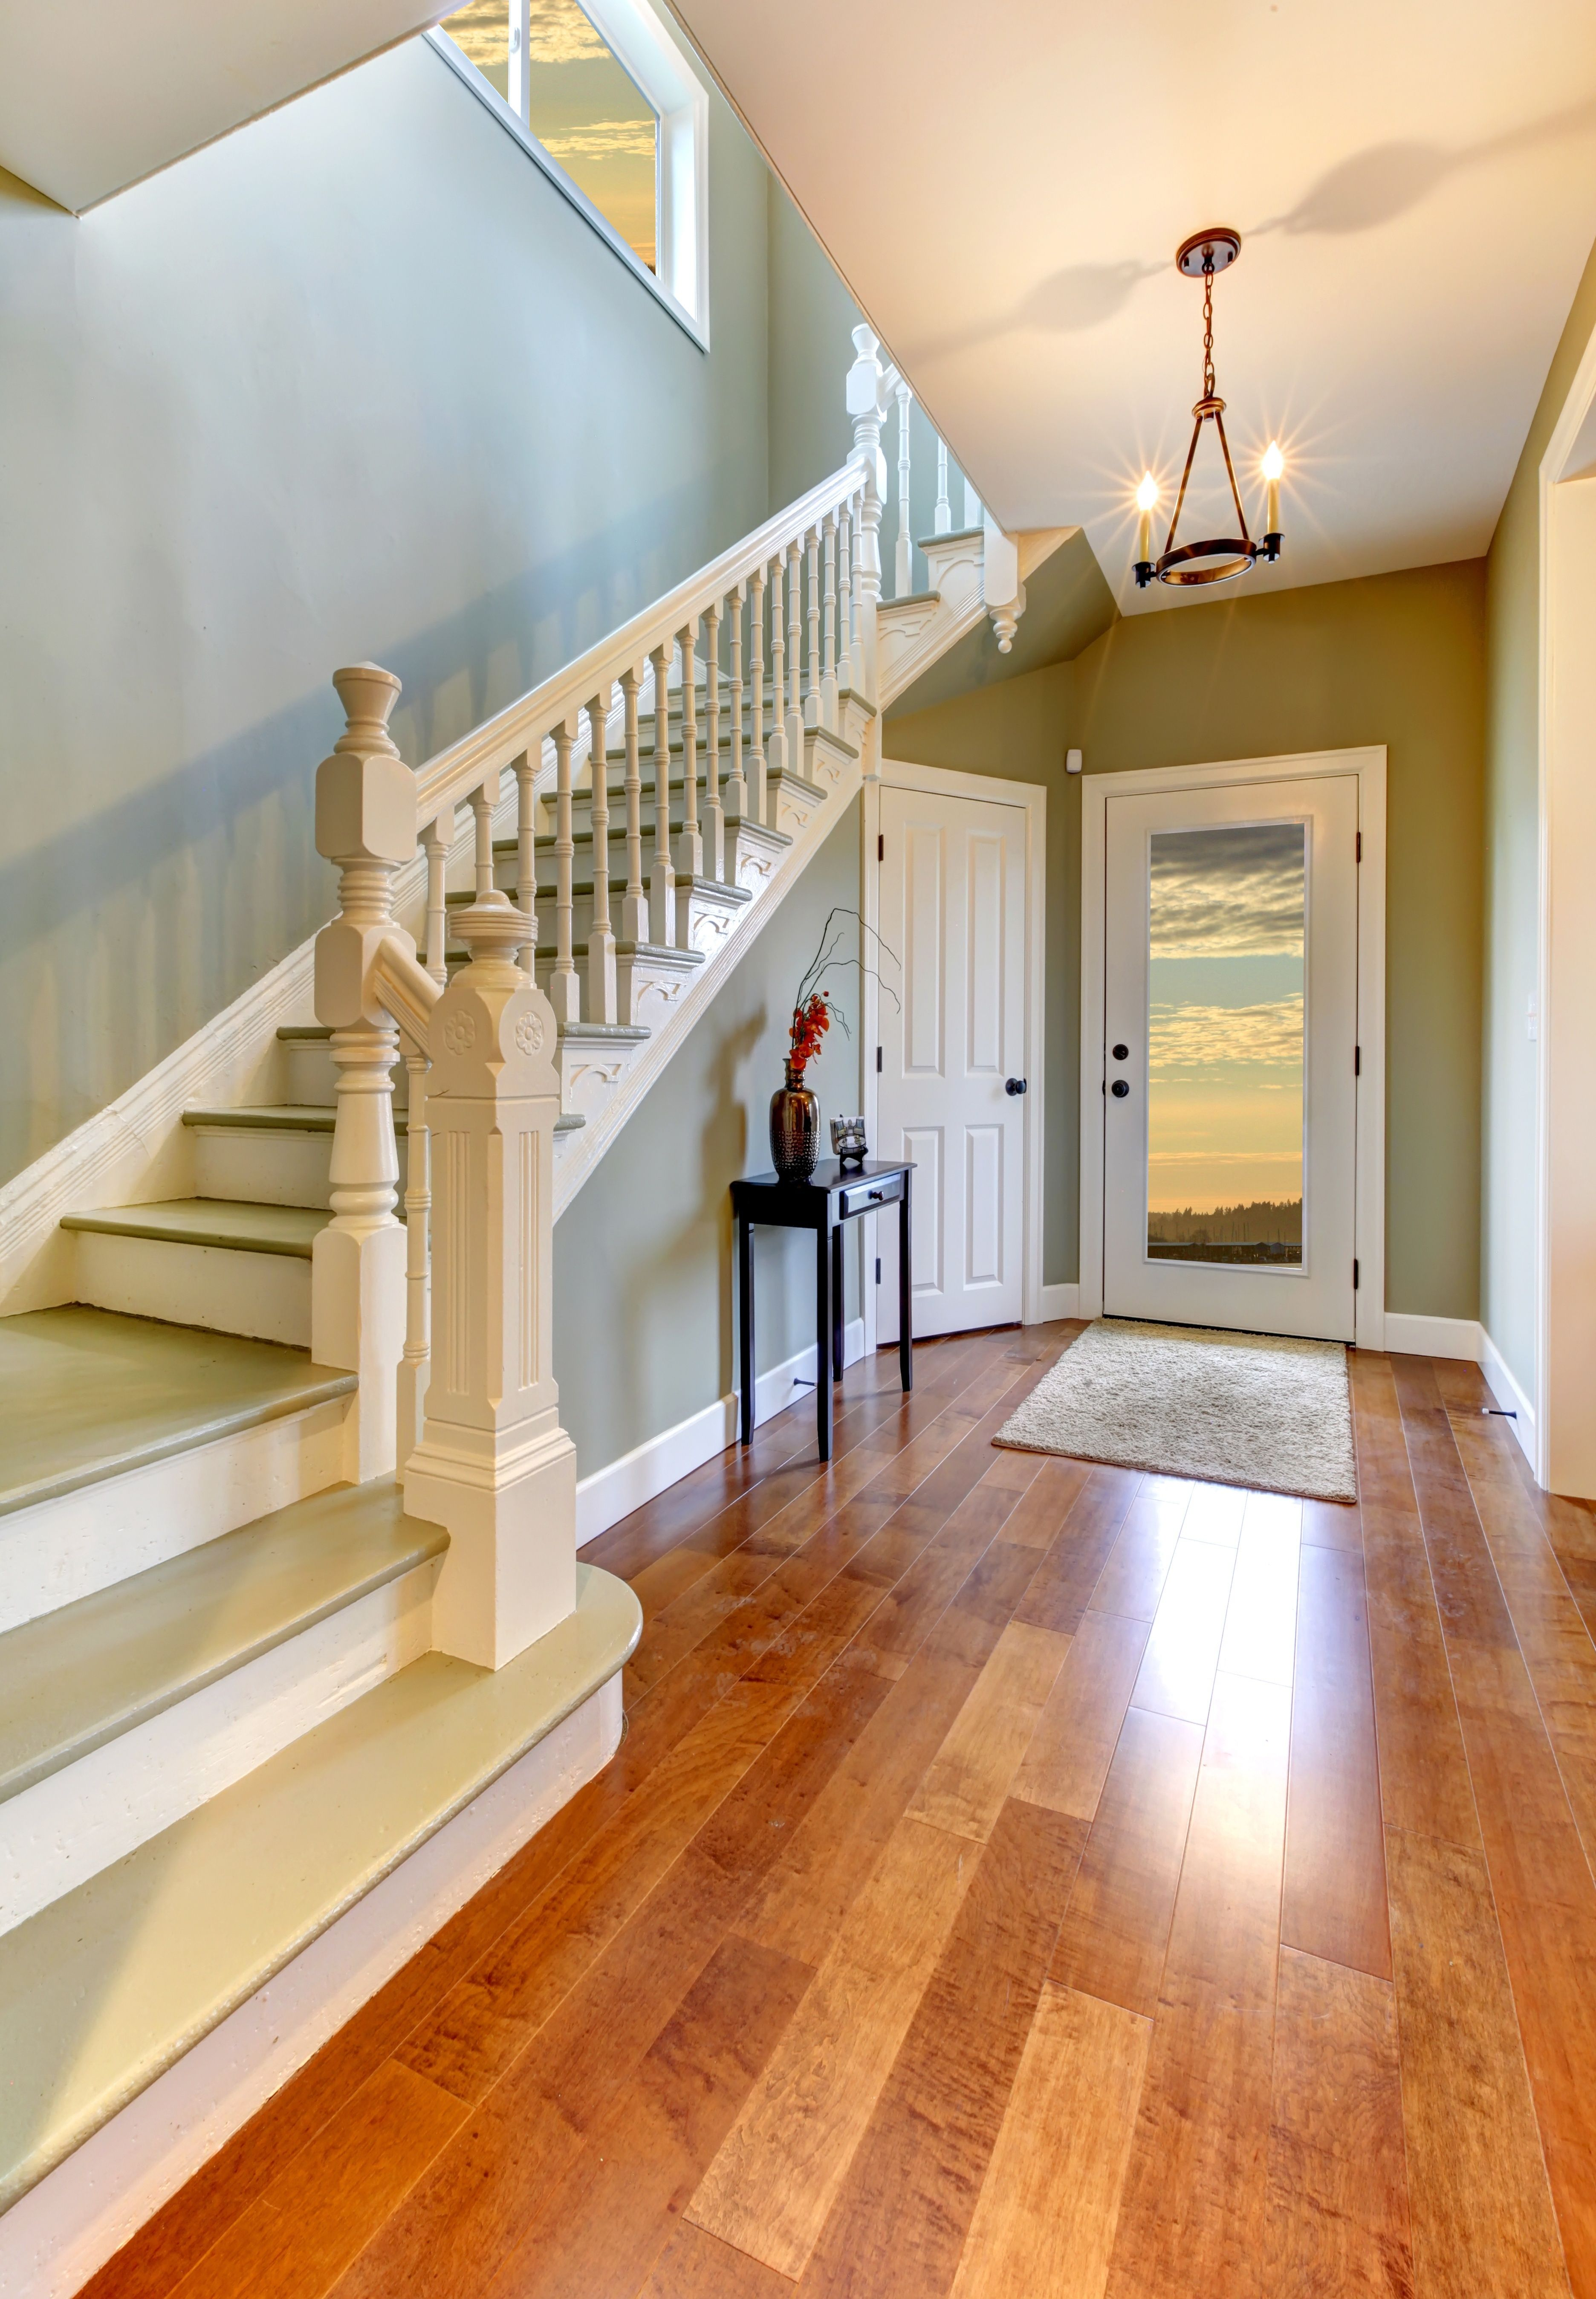 EnvyHardwoods Provides Premium Quality Engineered Hardwood Flooring In London Browse Here Hundreds Of Solid Wood Products Online Detail